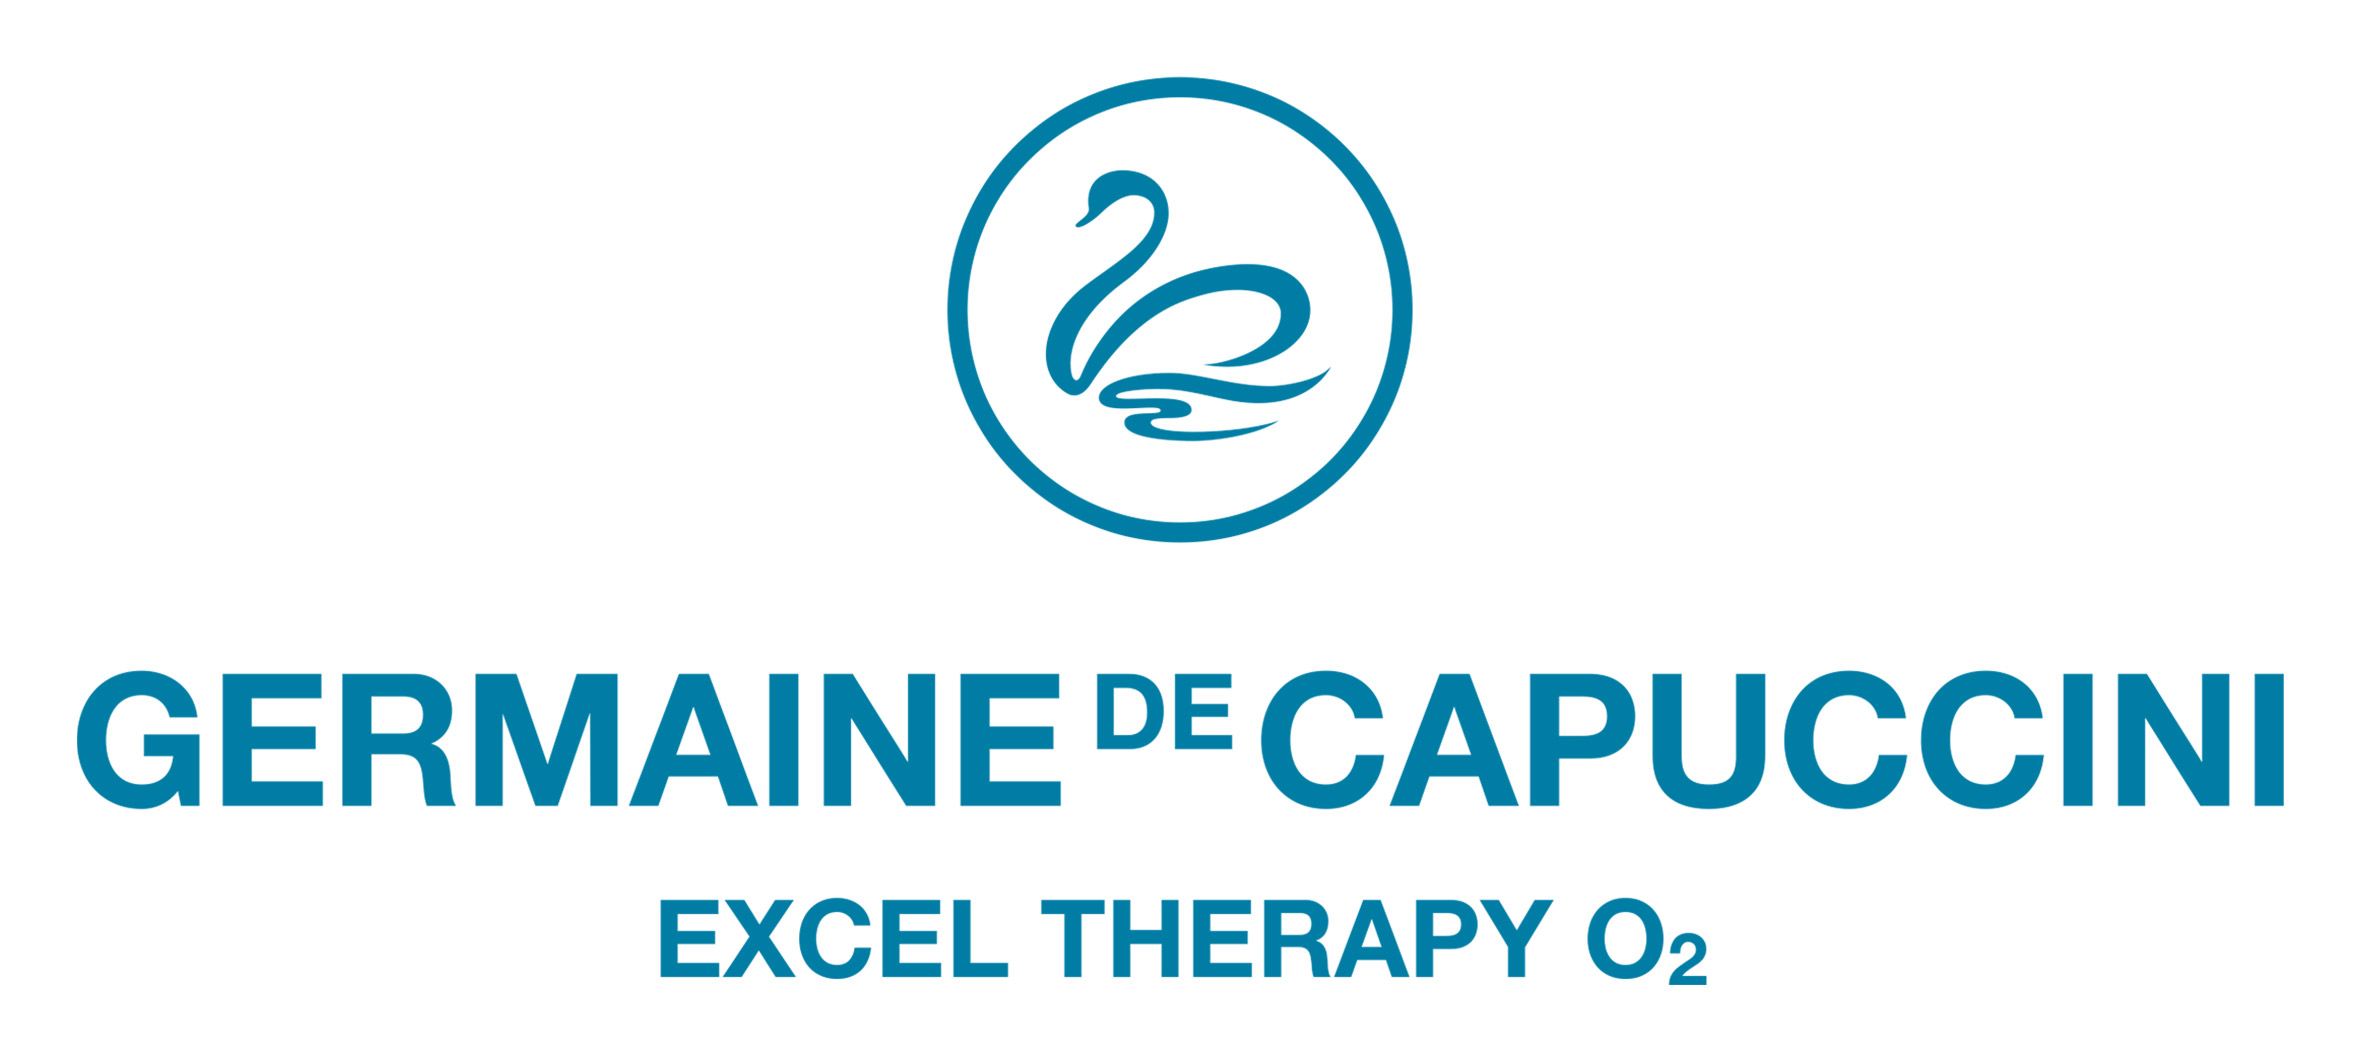 Excel Therapy O2